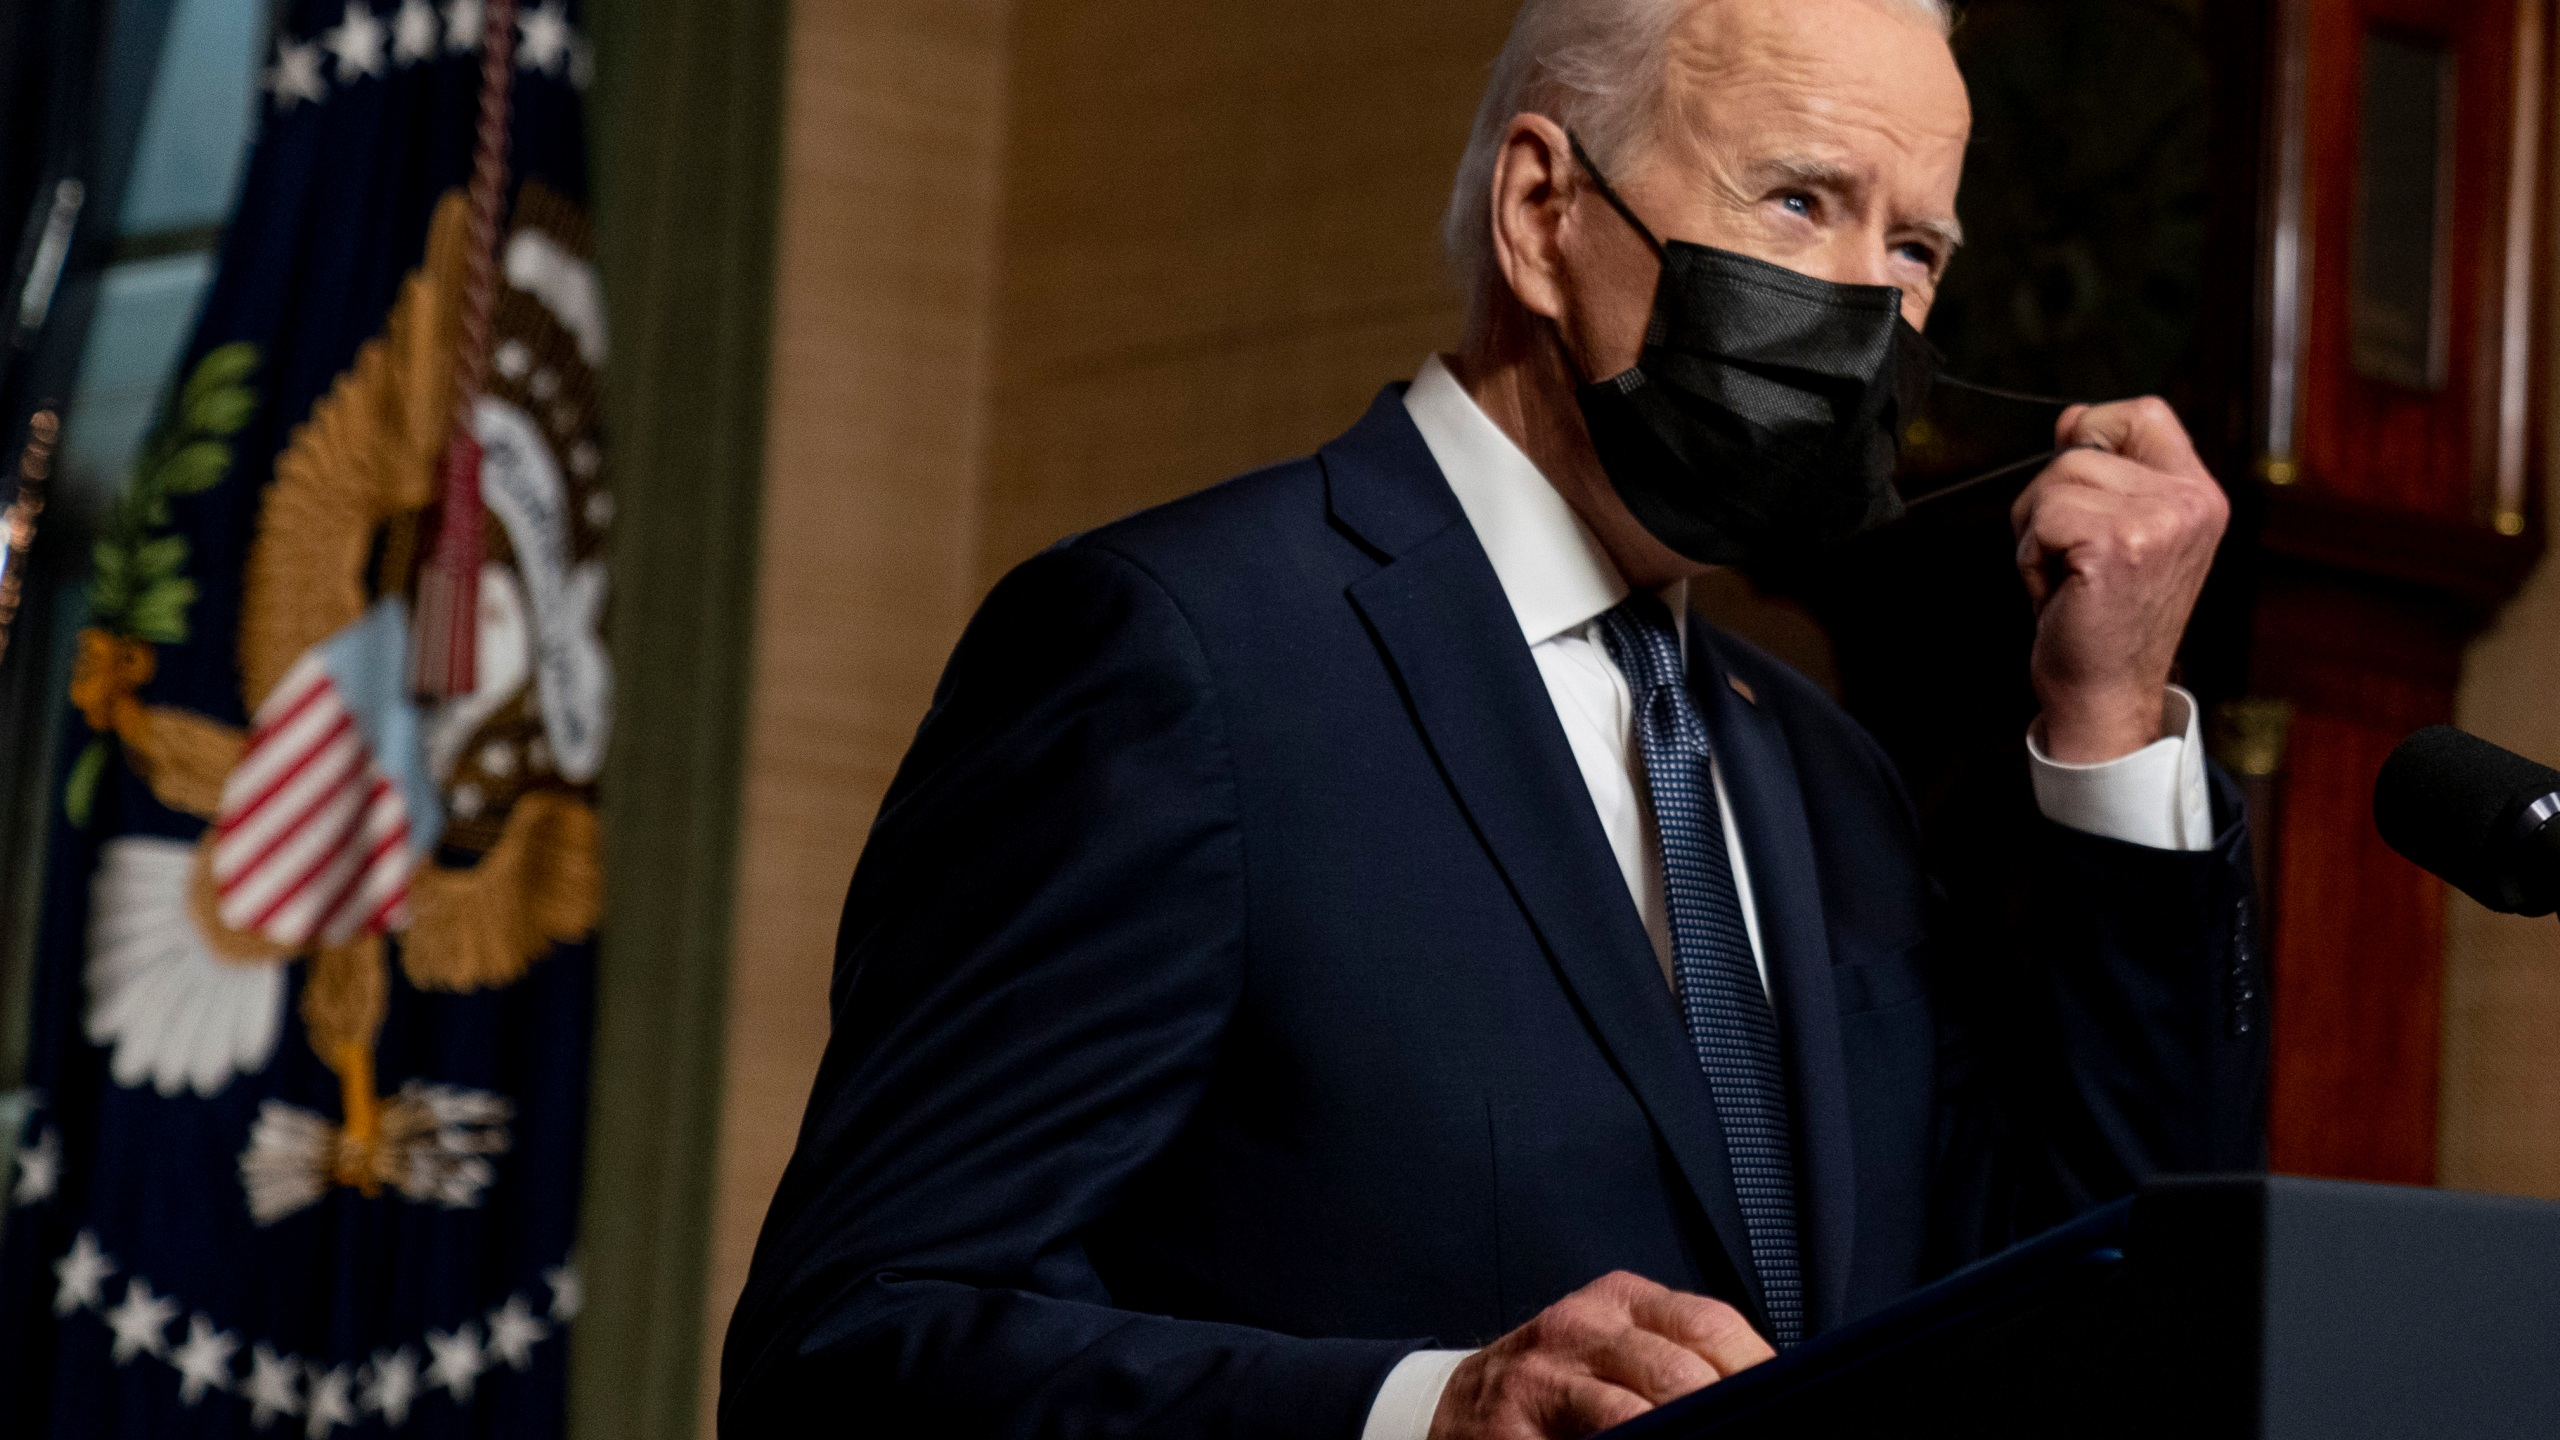 In this Wednesday, April 14, 2021, file photo, President Joe Biden removes his mask to speak at a news conference at the White House, in Washington. Ten liberal senators are urging Biden to back India and South Africa's appeal to the World Trade Organization to temporarily relax intellectual property rules so coronavirus vaccines can be manufactured by nations that are struggling to inoculate their population. (AP Photo/Andrew Harnik, Pool, File)